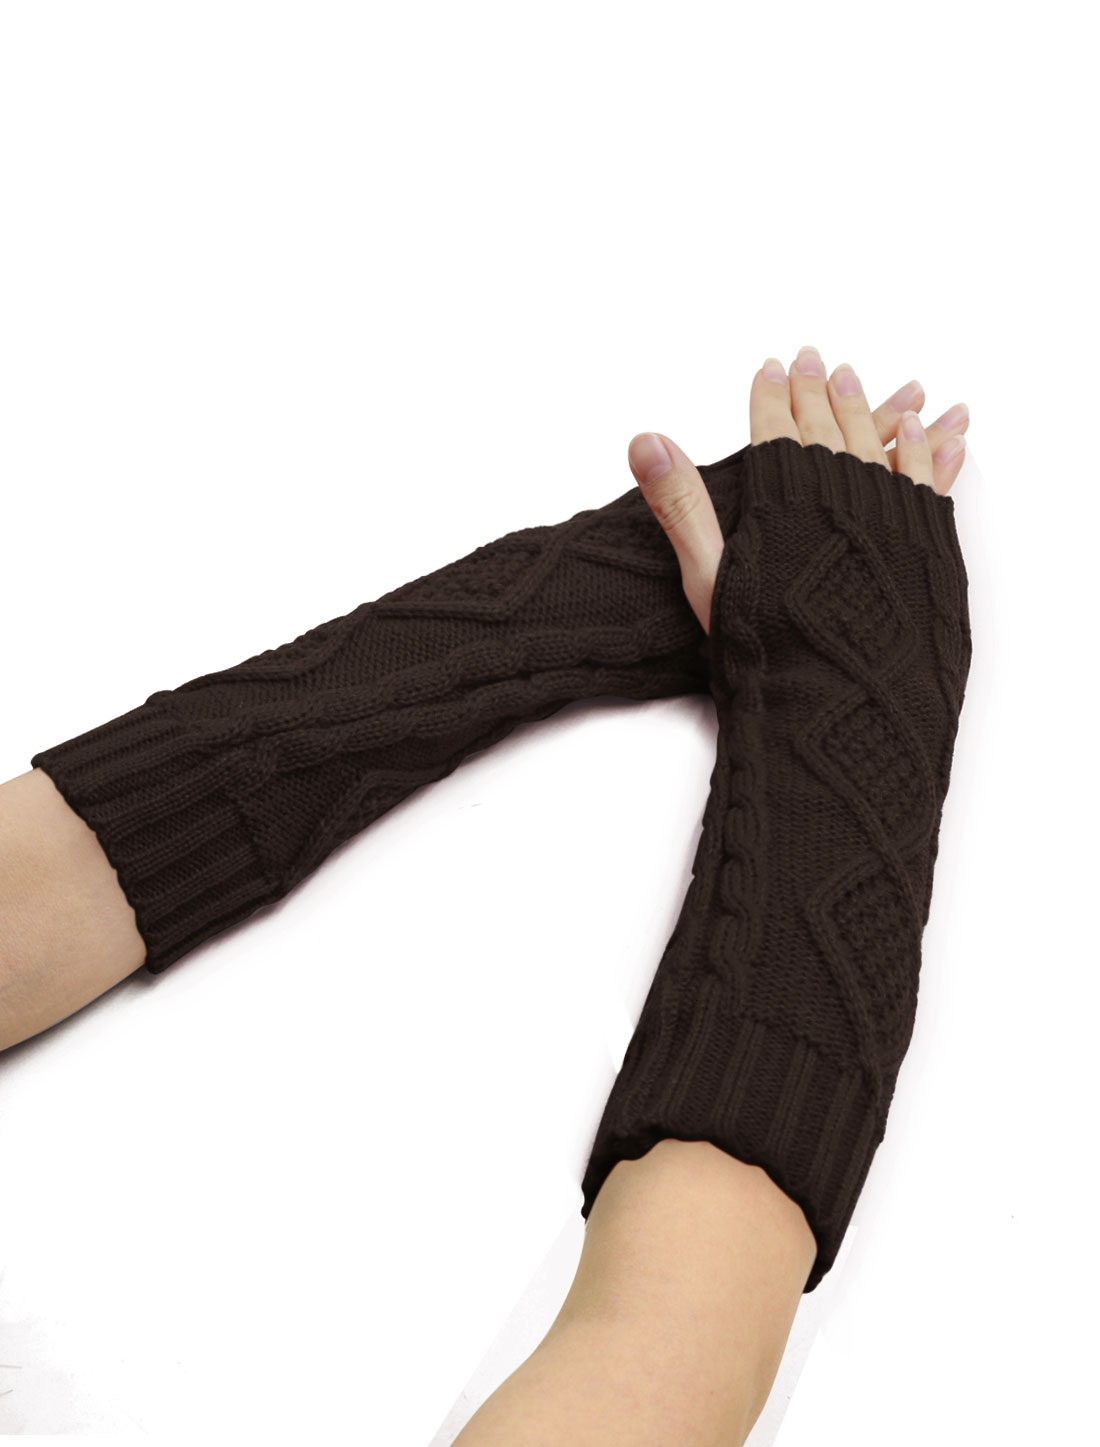 Women Elbow Length Argyle Design Cable Knit Arm Warmers Pair Coffee